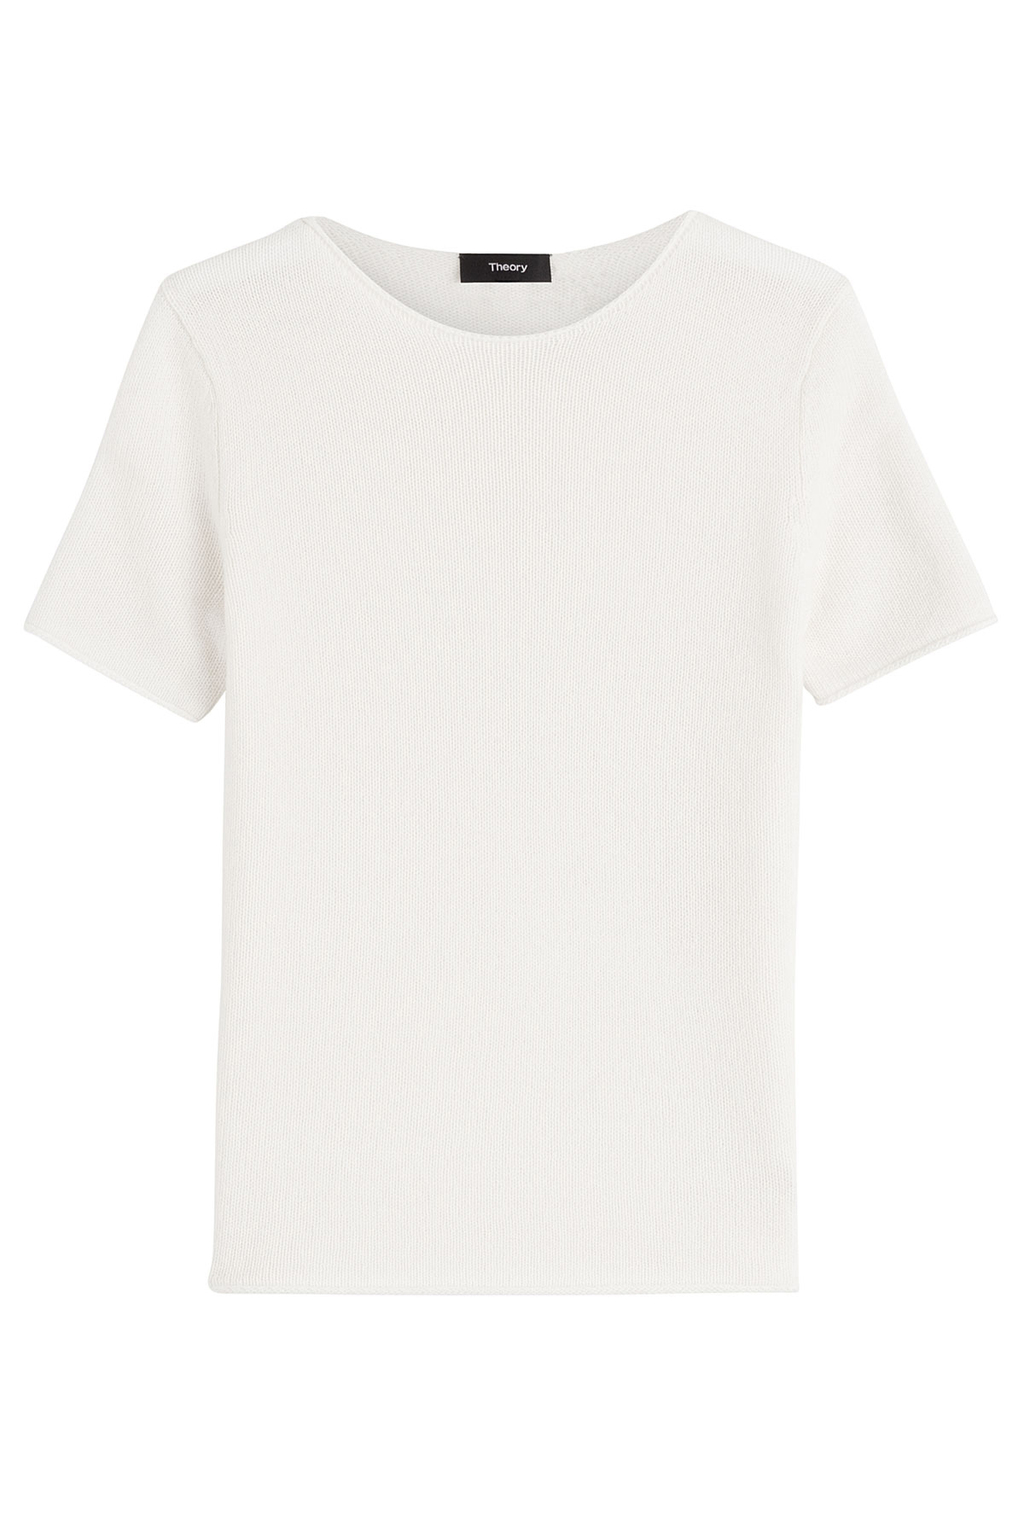 Short Sleeve Cashmere Top - pattern: plain; style: t-shirt; predominant colour: white; occasions: casual; length: standard; fit: body skimming; neckline: crew; fibres: cashmere - 100%; sleeve length: short sleeve; sleeve style: standard; pattern type: fabric; texture group: other - light to midweight; season: s/s 2016; wardrobe: basic